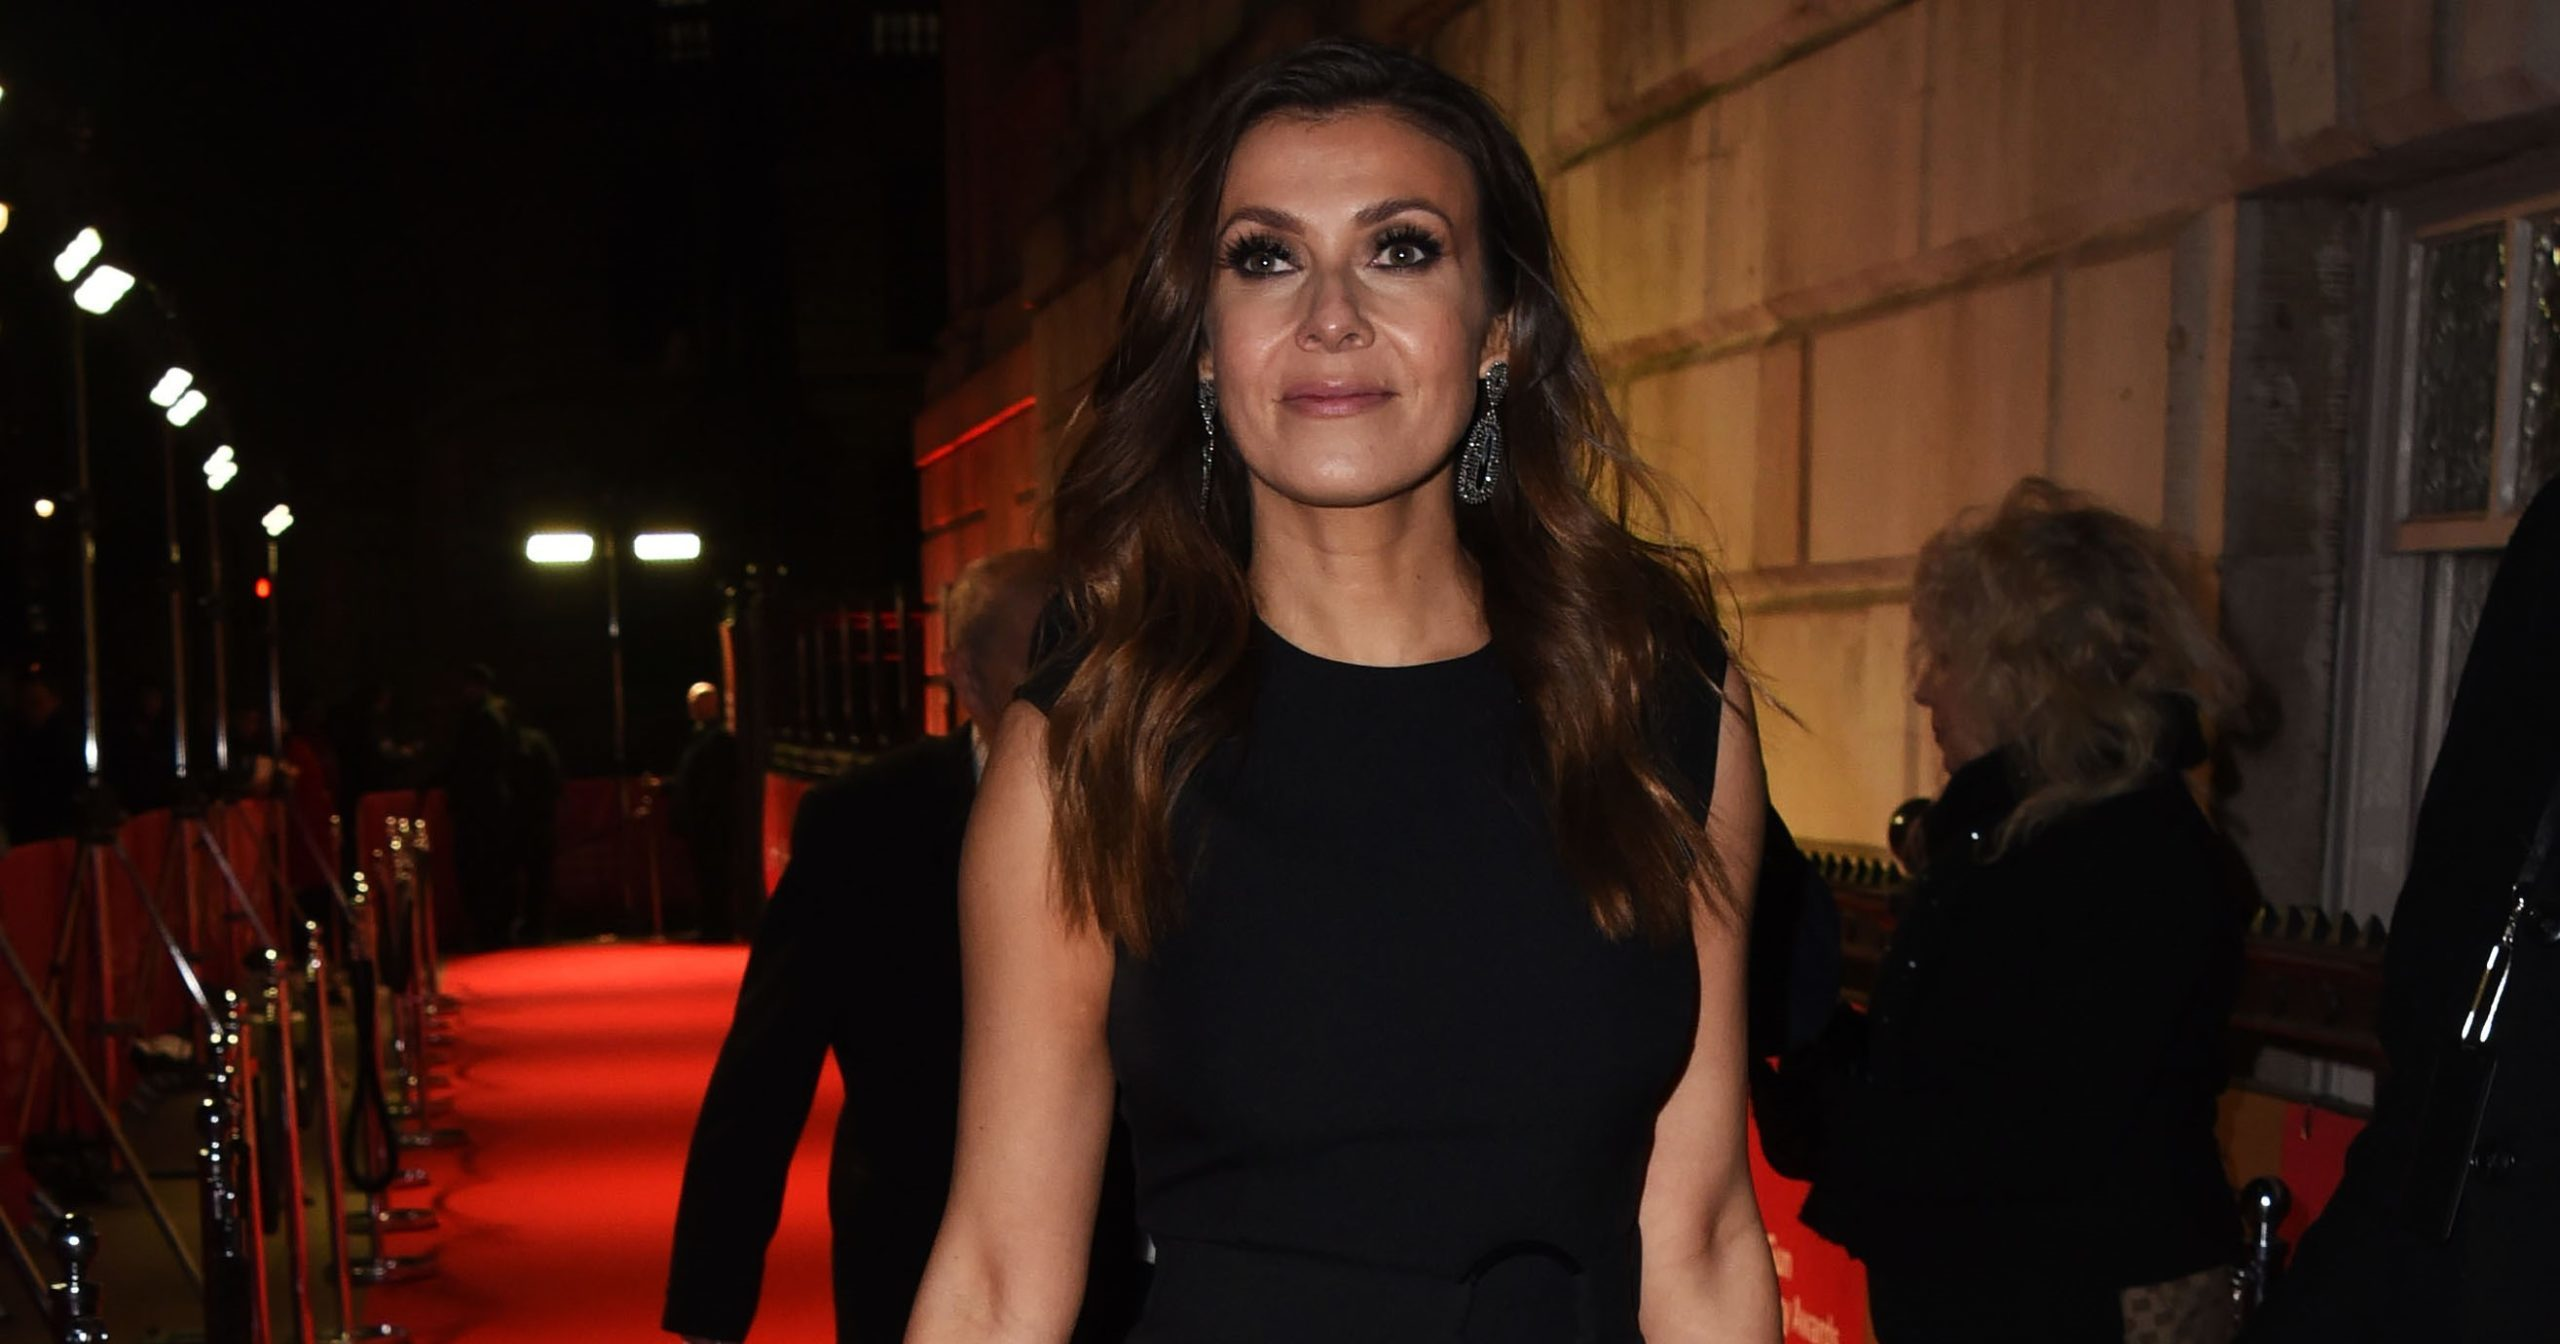 Former Coronation Street star Kym Marsh denies she's an anti-vaxxer after comment on friend's post